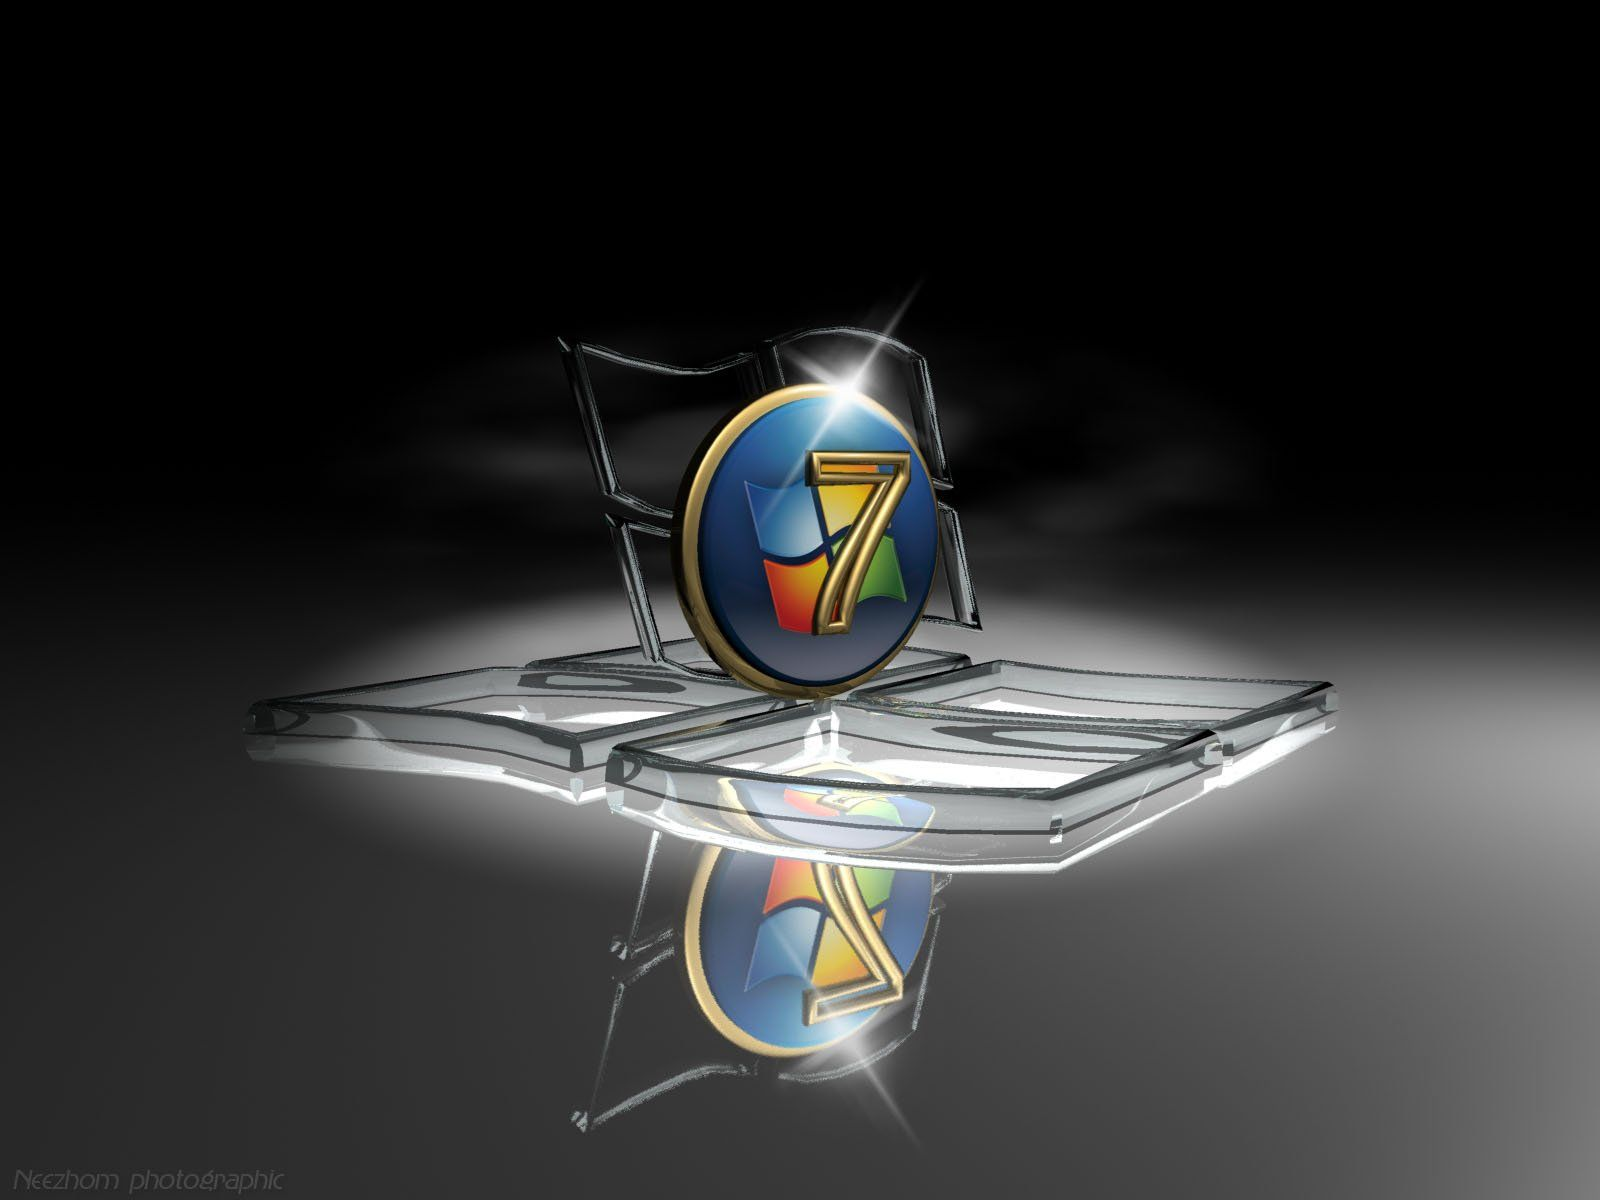 BS69 Free Windows 7 Wallpaper Themes Awesome Windows 7